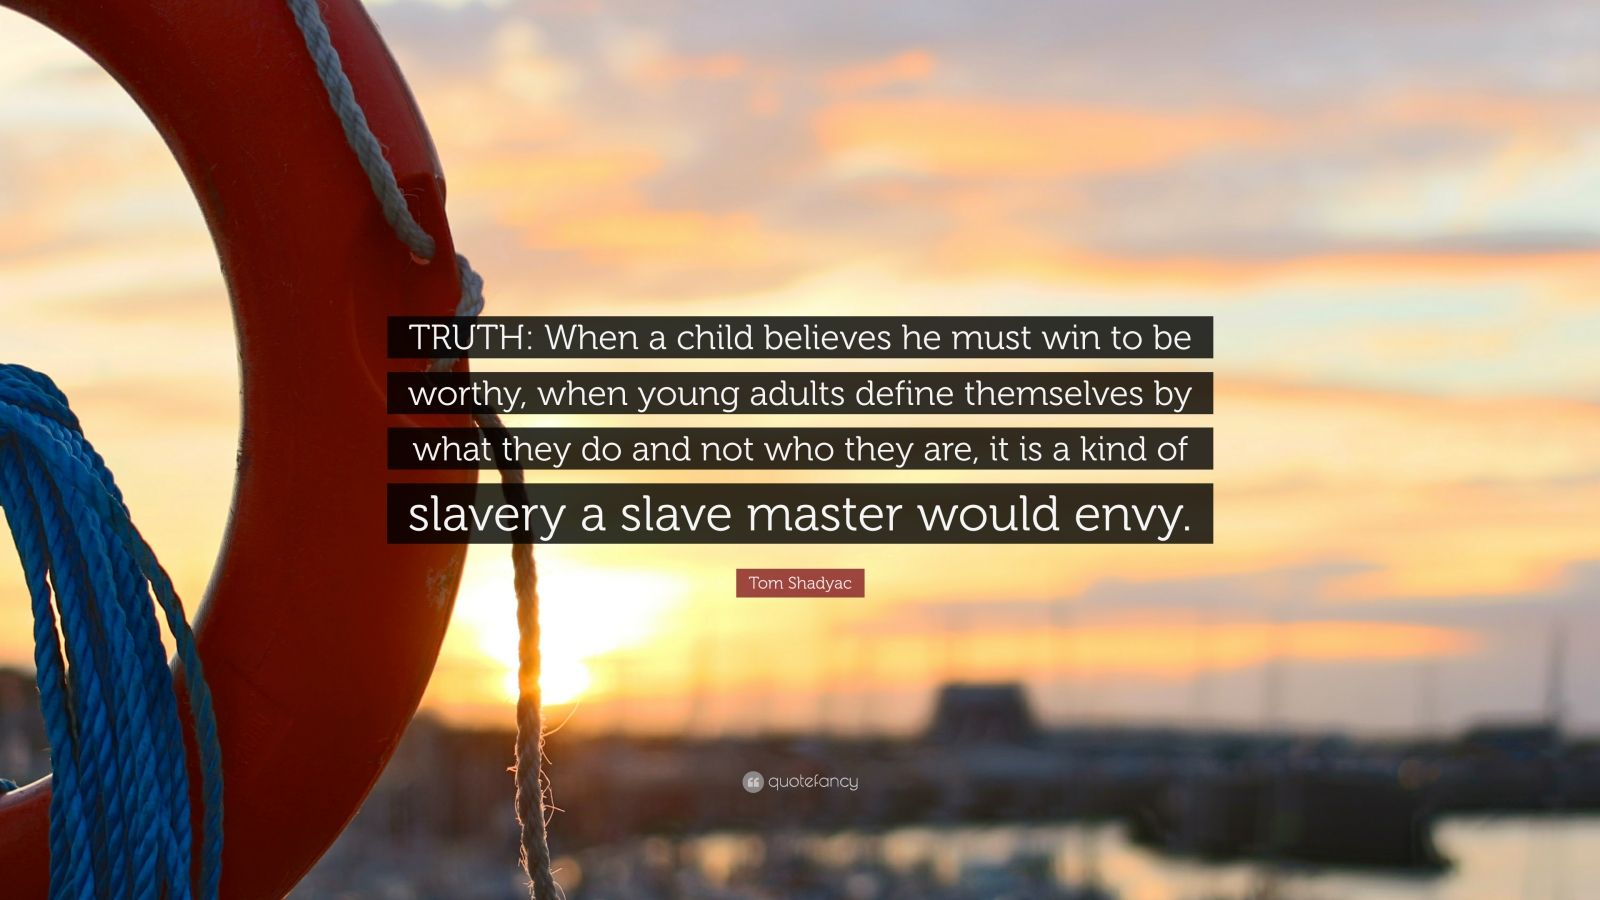 """Tom Shadyac Quote: """"TRUTH: When a child believes he must win to be worthy, when young adults define themselves by what they do and not who they are, it is a kind of slavery a slave master would envy."""""""